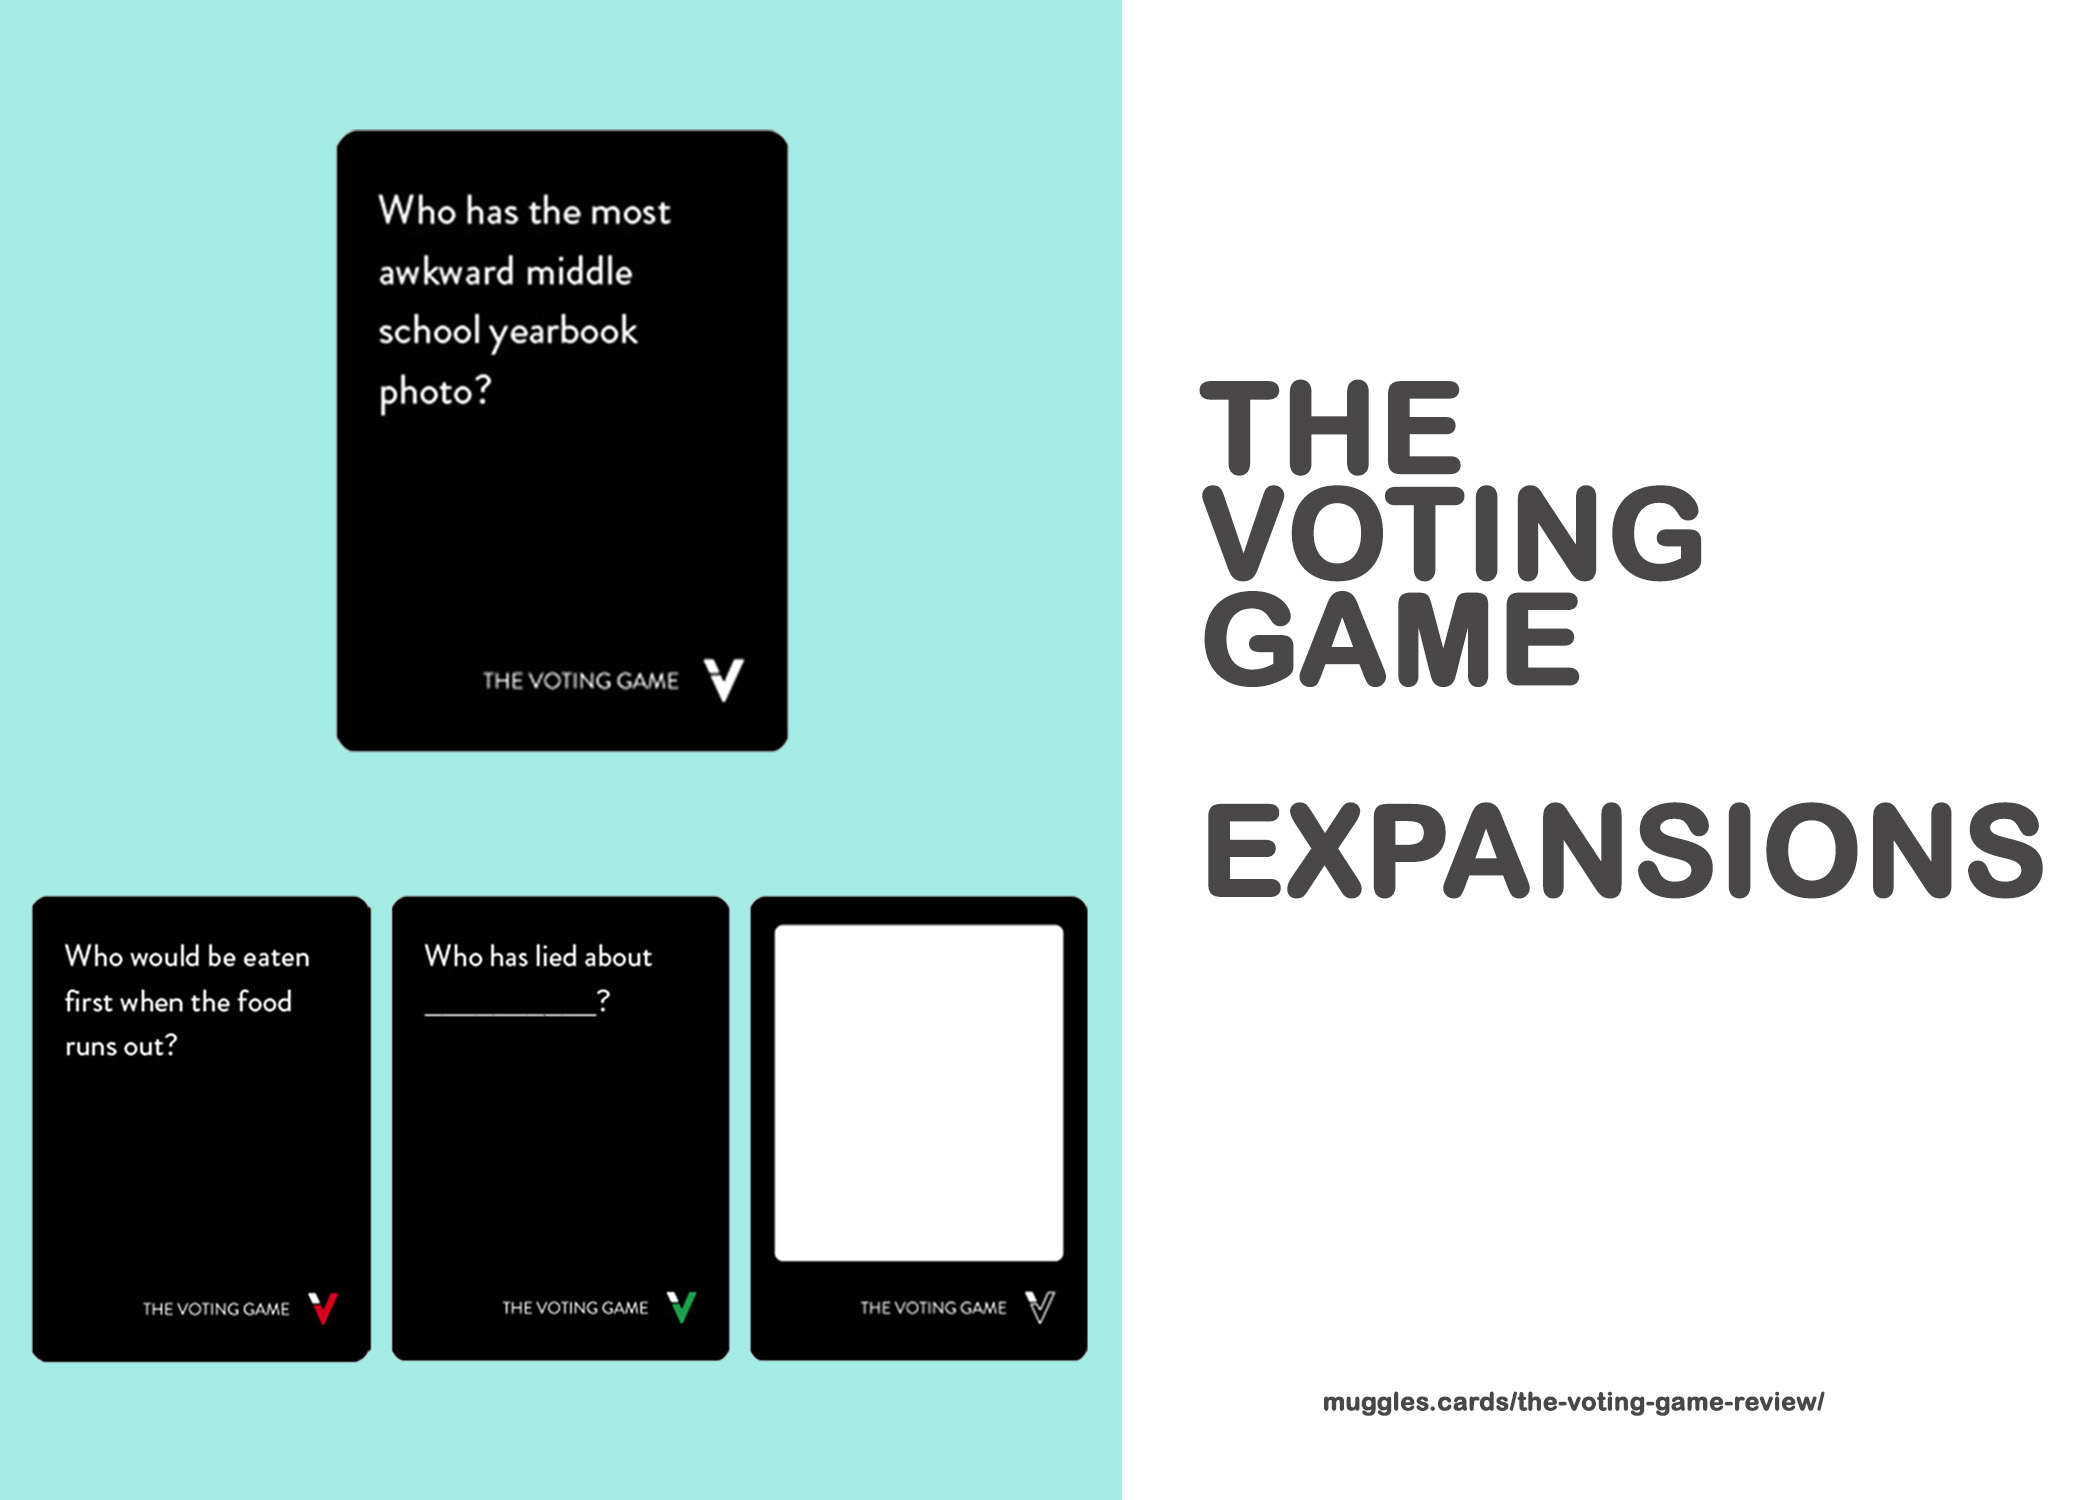 The Voting Game EXPANSIONS